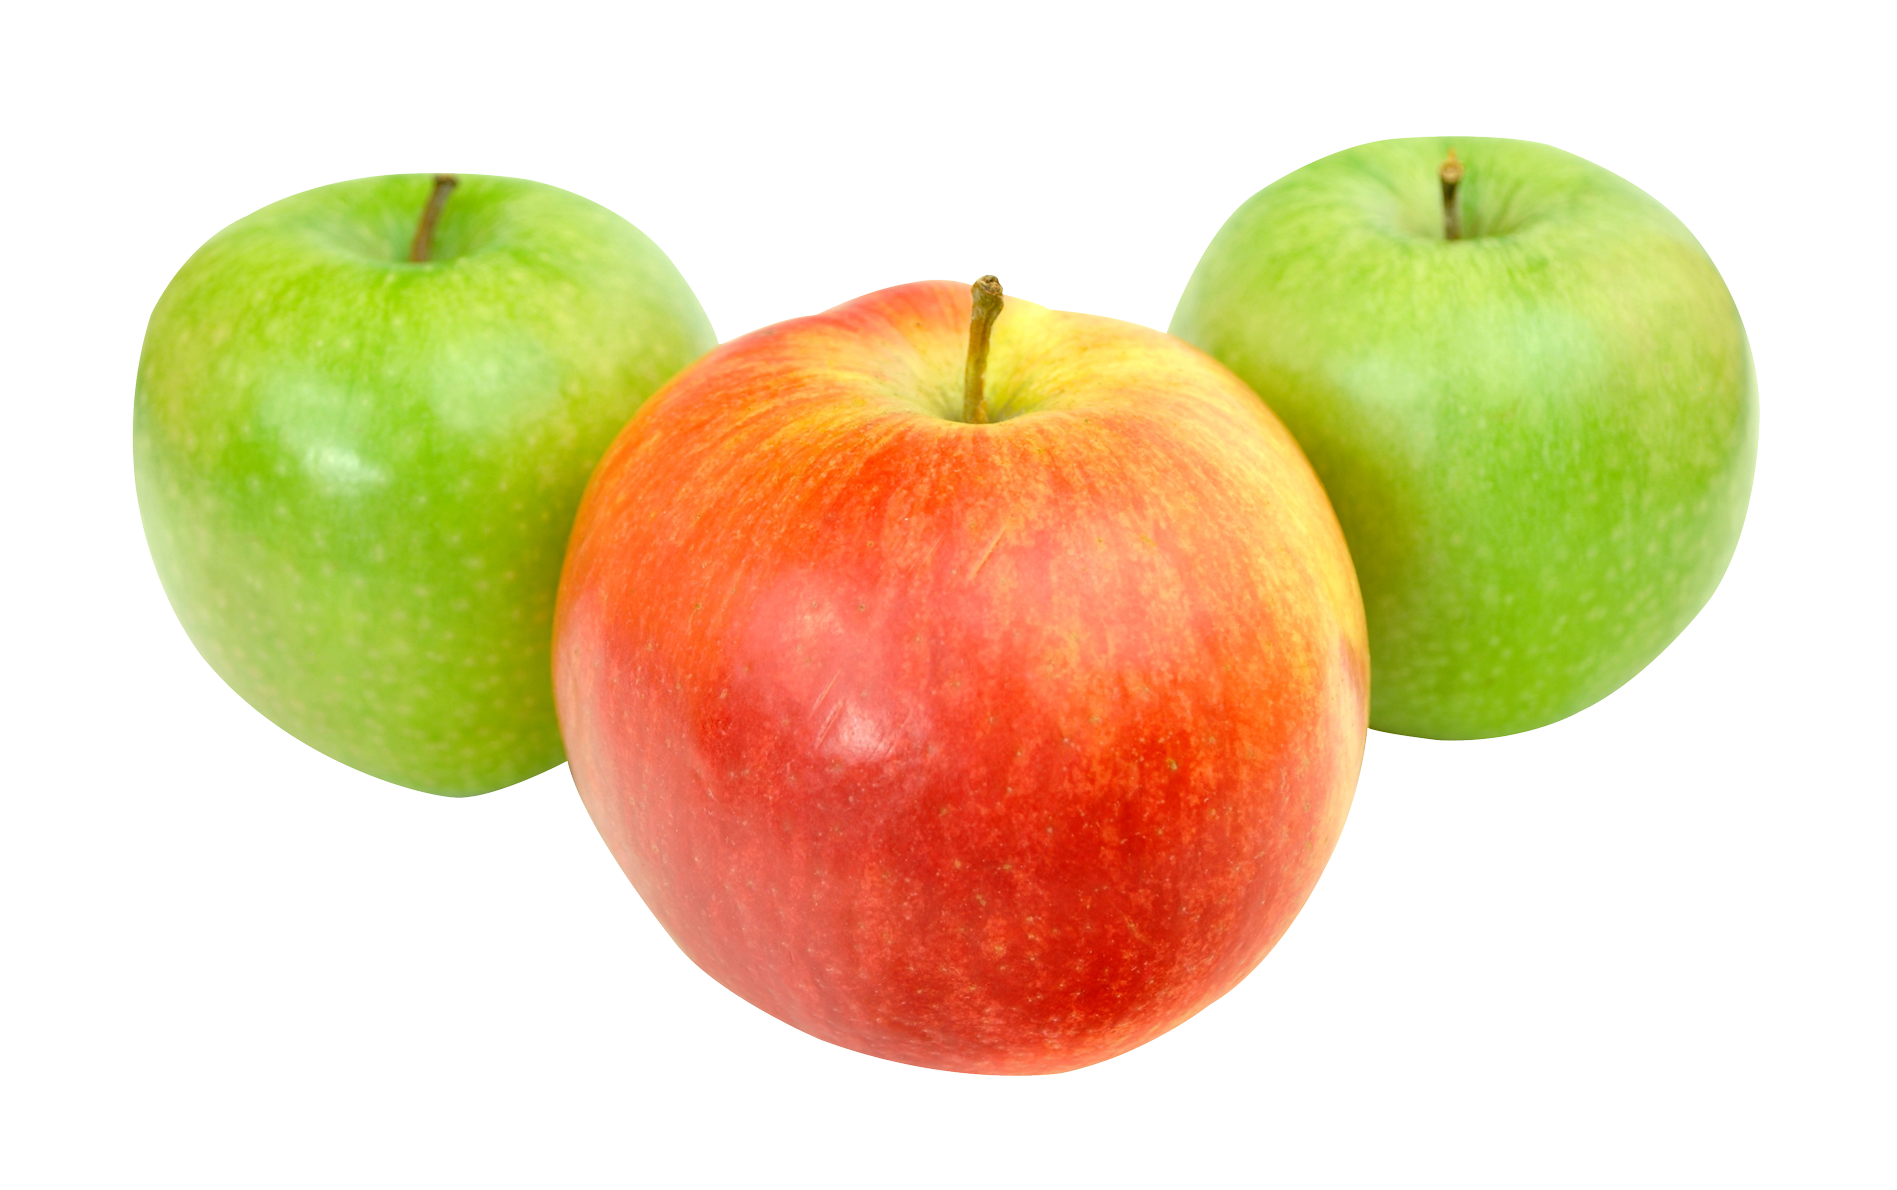 apple png image pngpix 11729